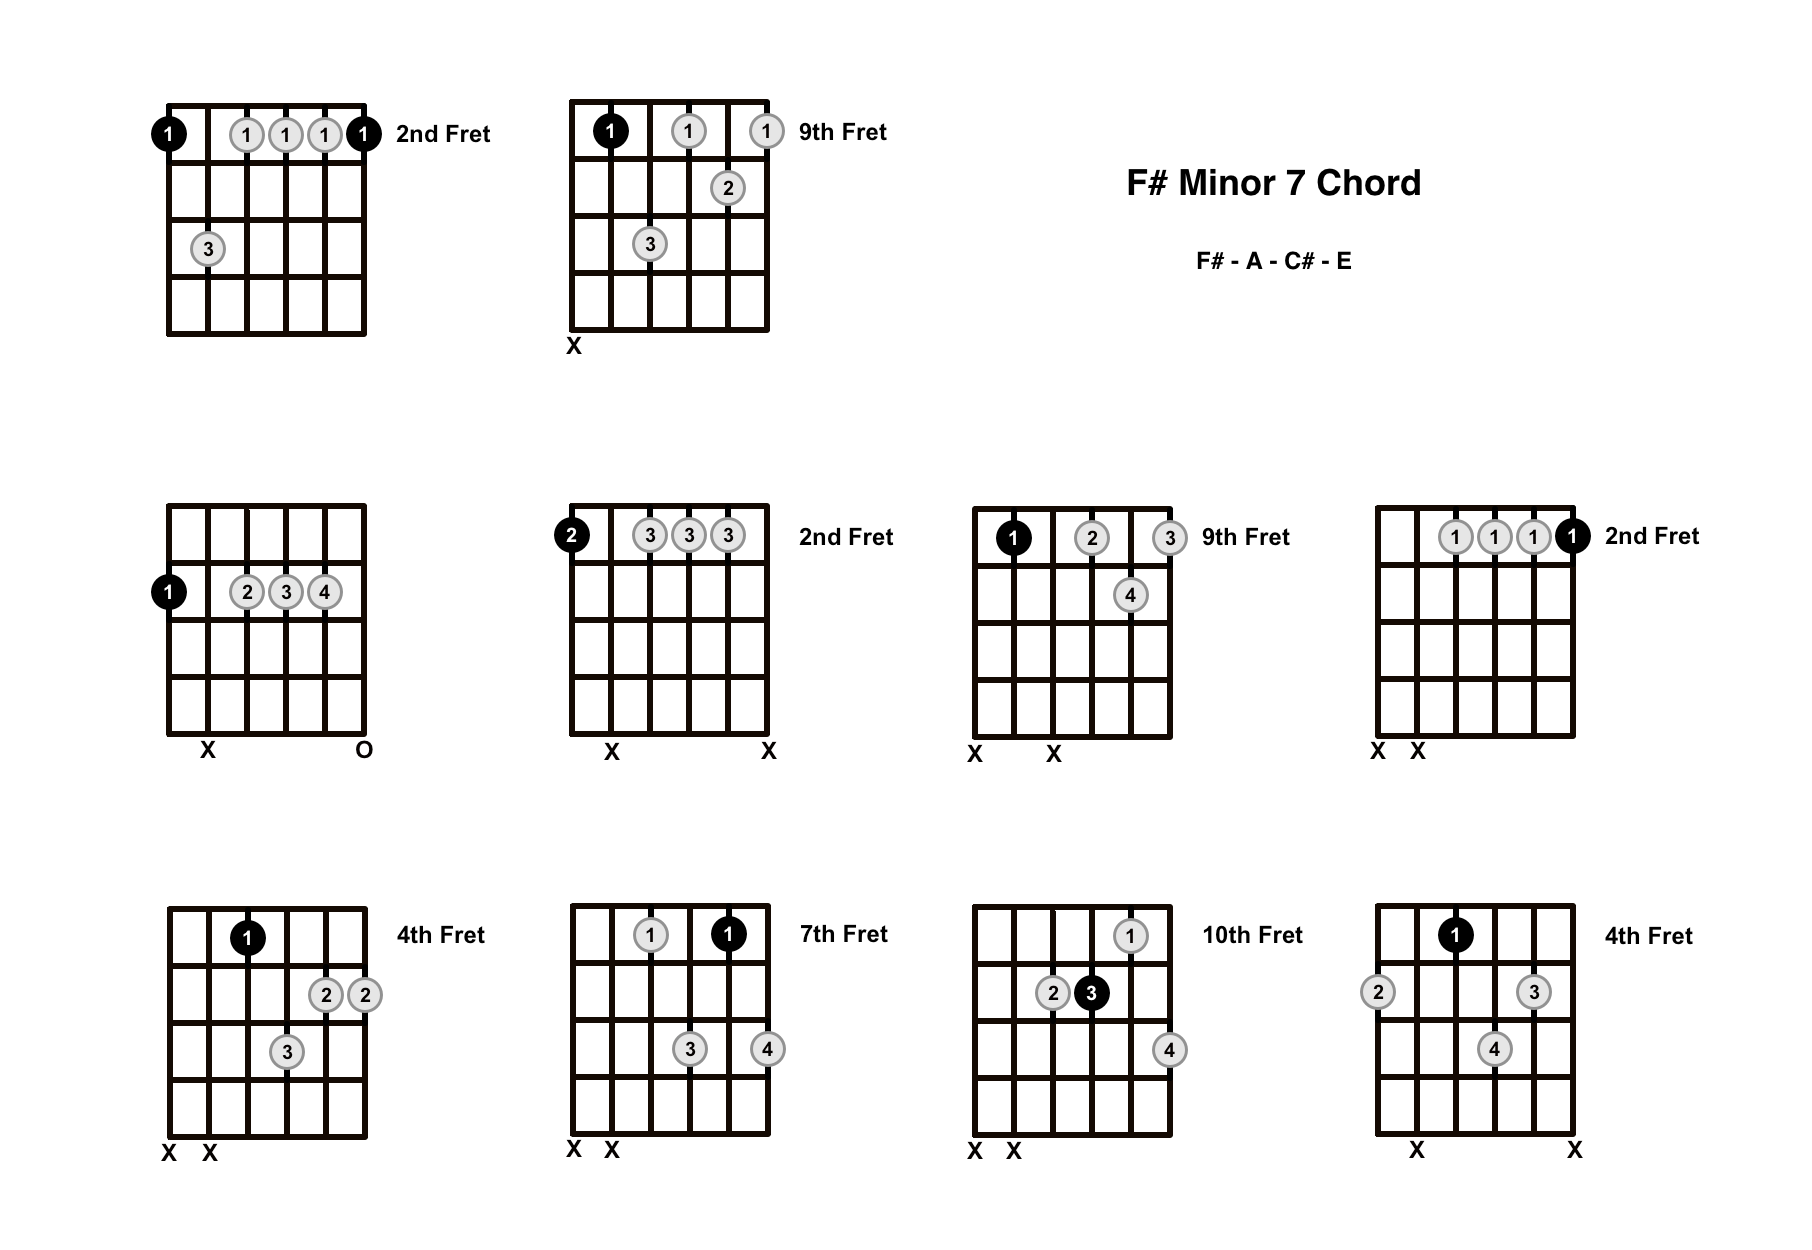 F#m7 Chord on the Guitar (F Sharp Minor 7) – Diagrams, Finger Positions, Theory